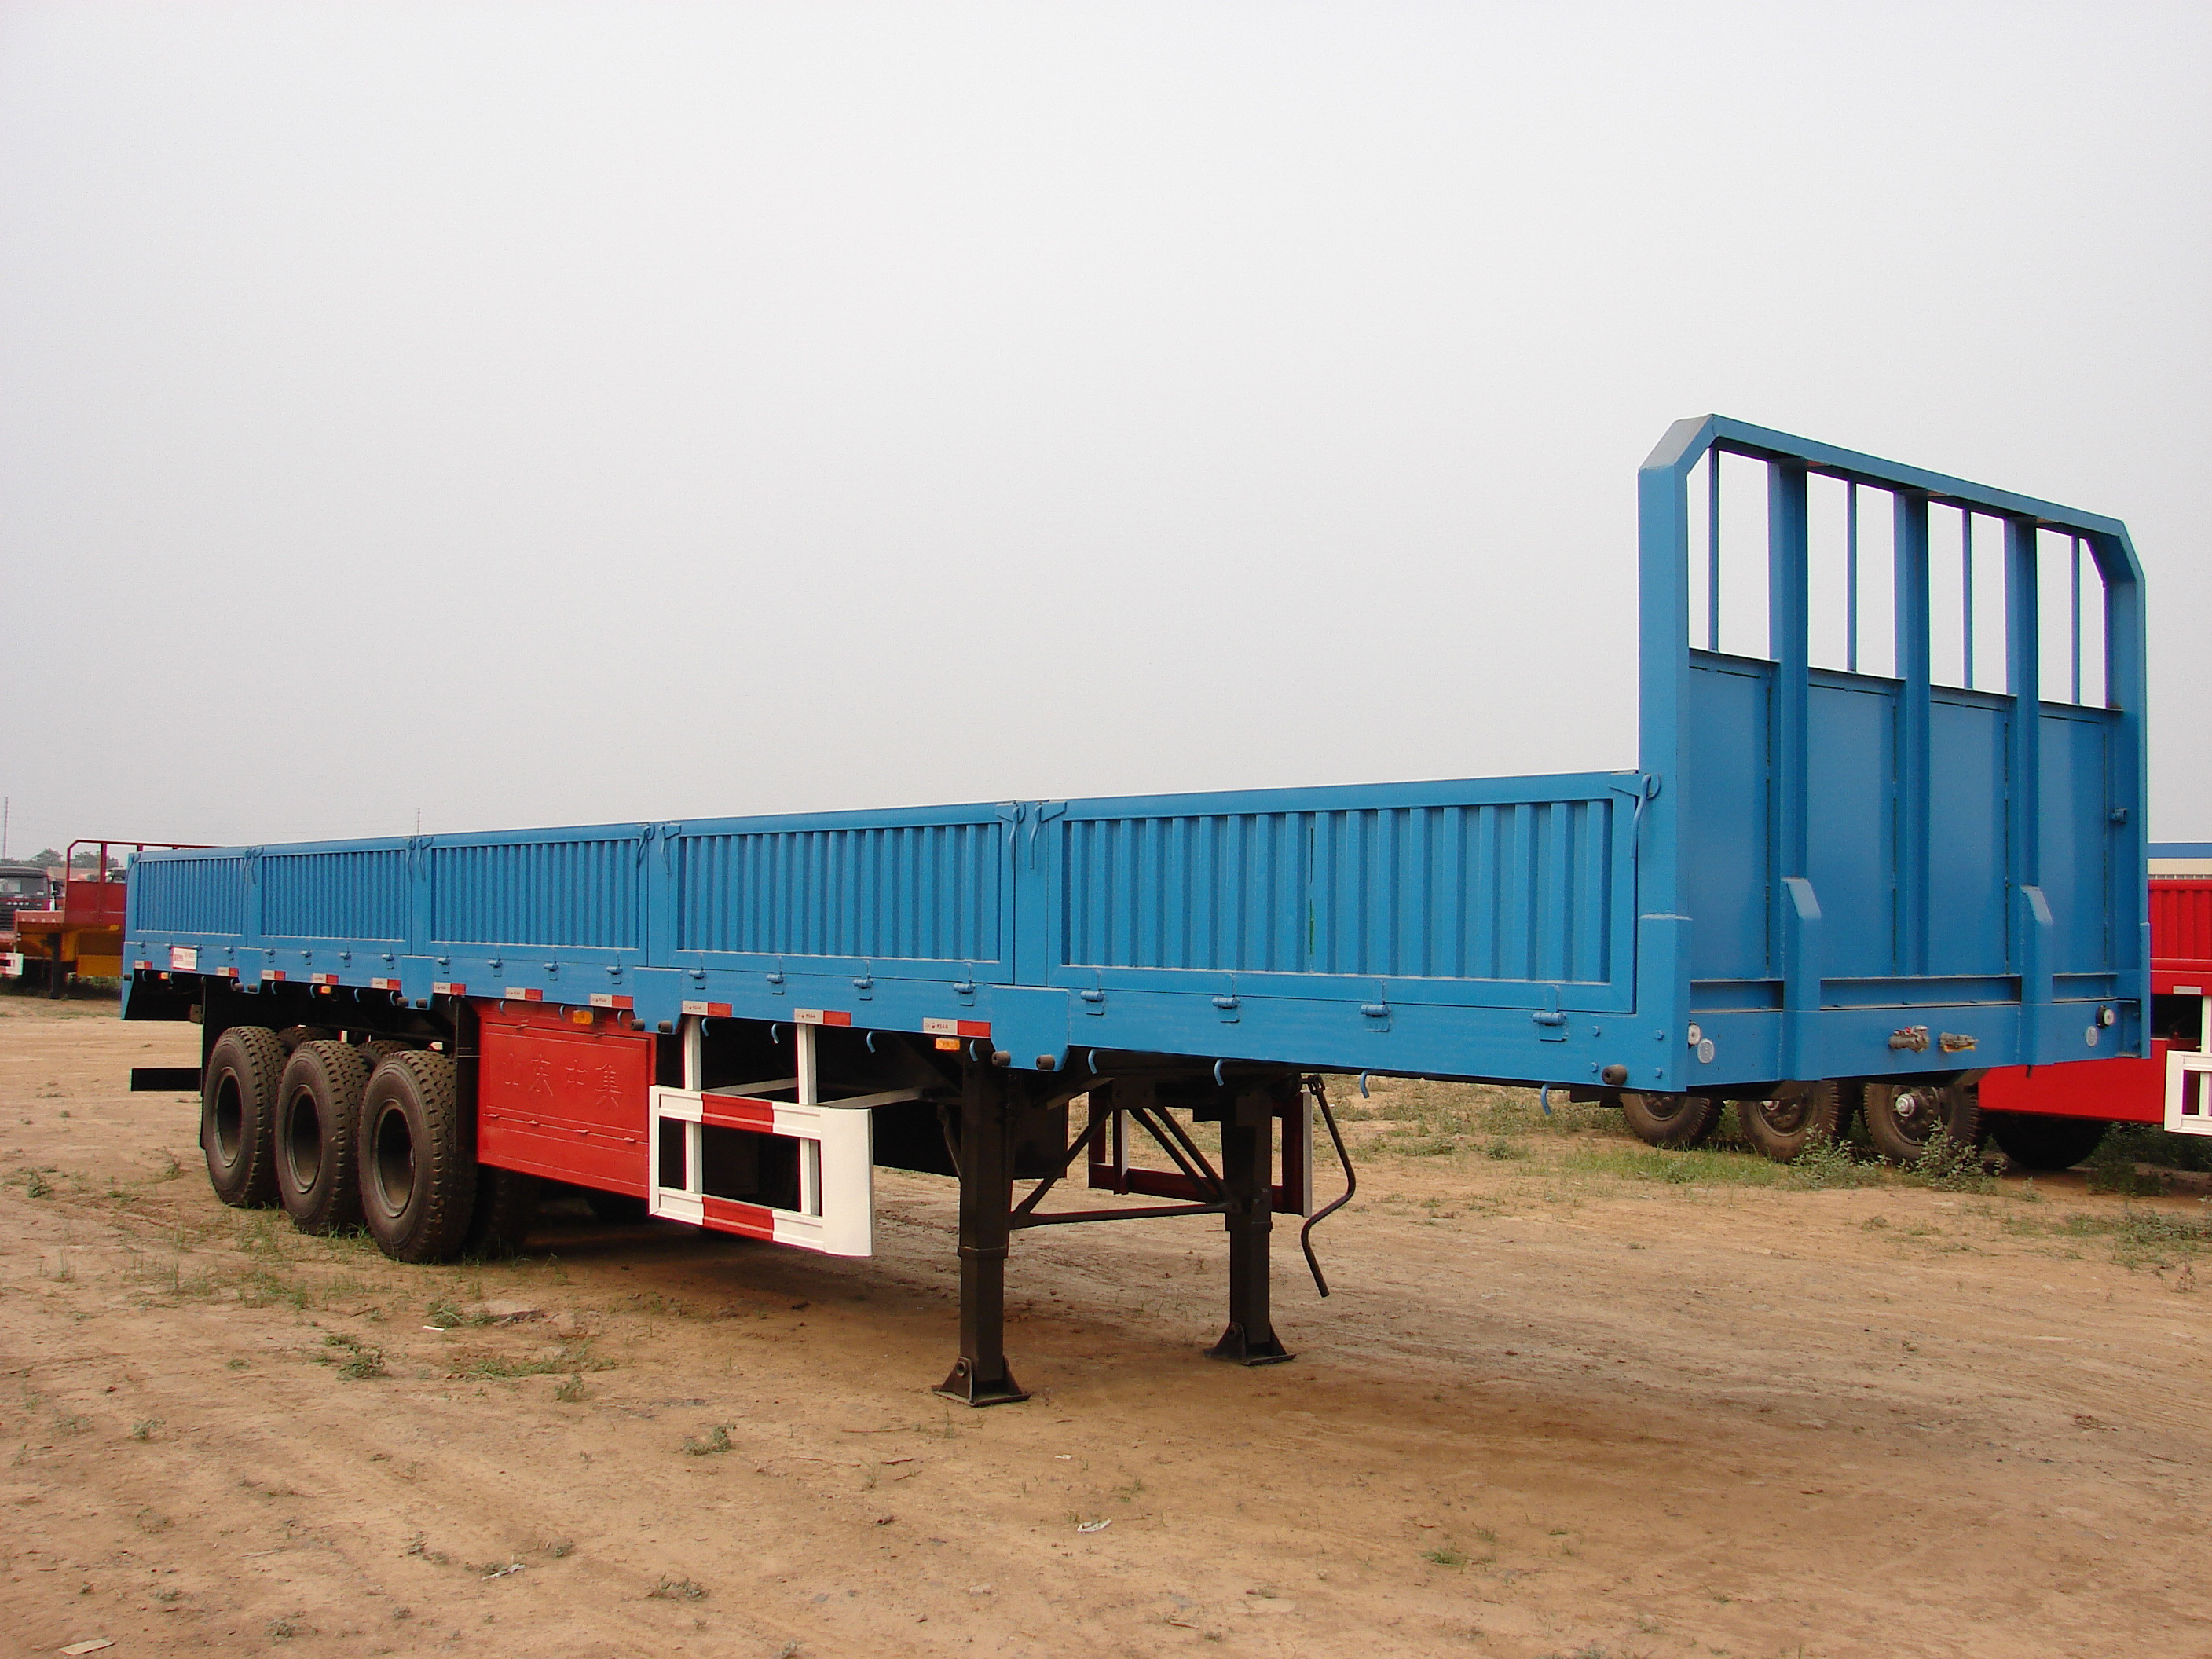 SINOTRUK 40ft Heavy Duty Semi Trailers Cargo Truck 2 / 3 Axles With 40-60 Tons Cabuge